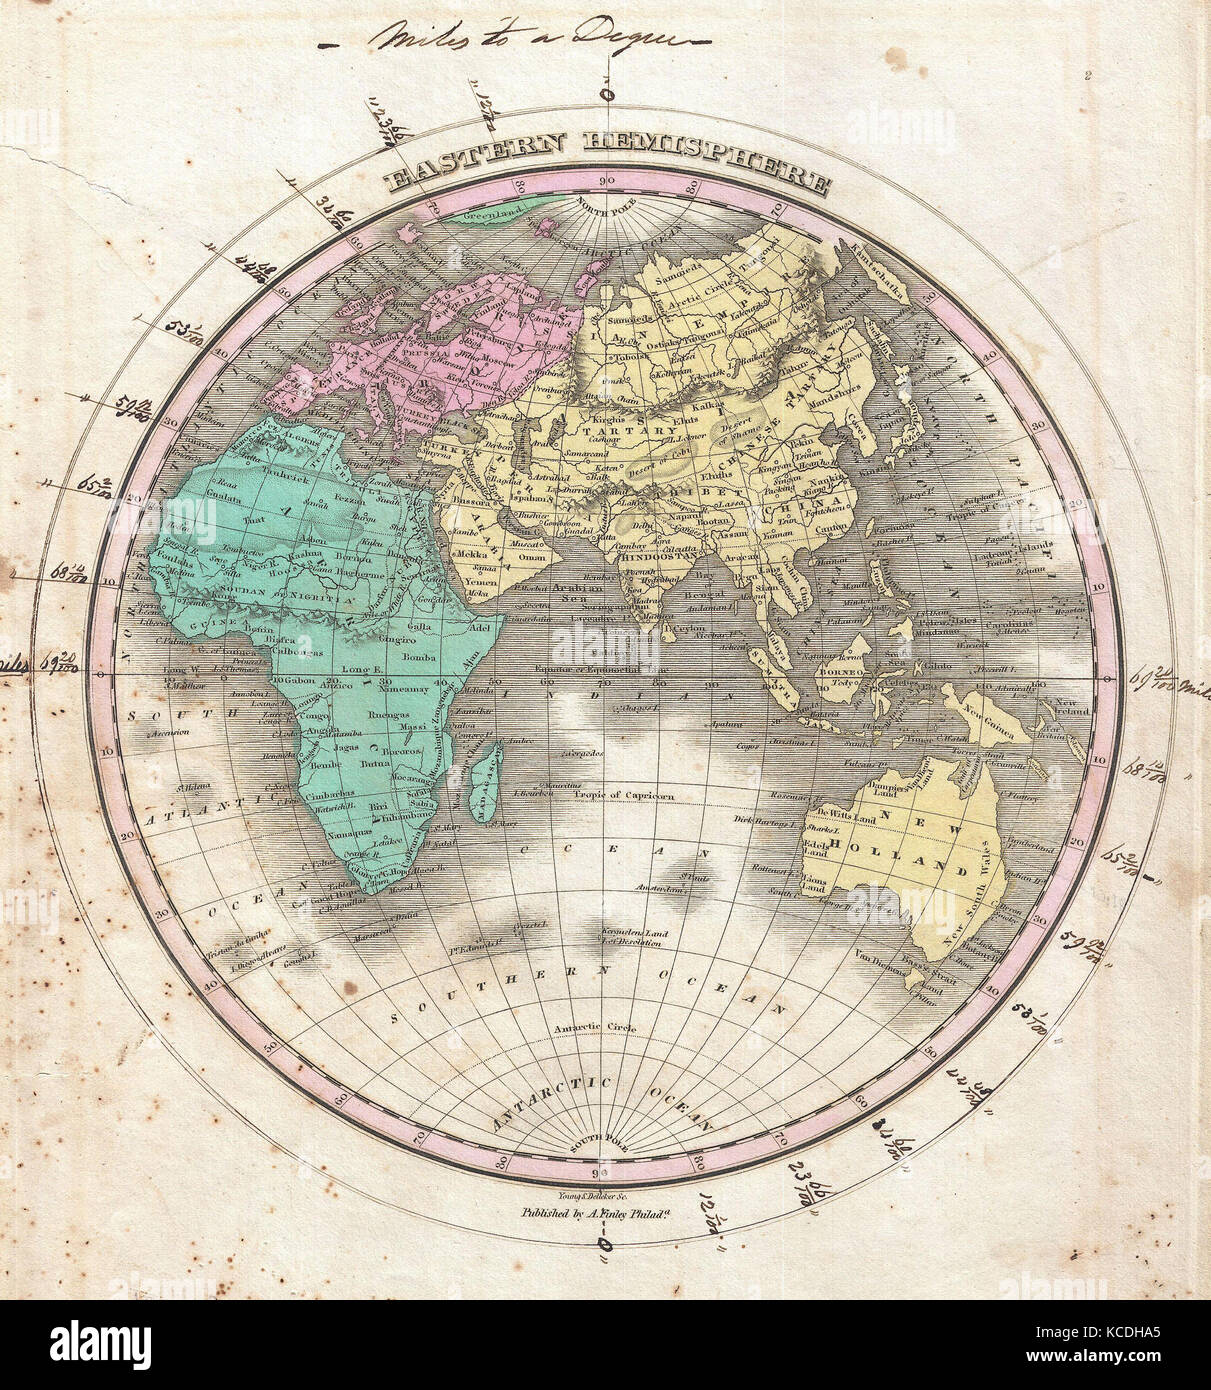 Attractive 1827, Finley Map Of The Eastern Hemisphere, Asia, Australia, Europe,  Africa, Anthony Finley Mapmaker Of The United States